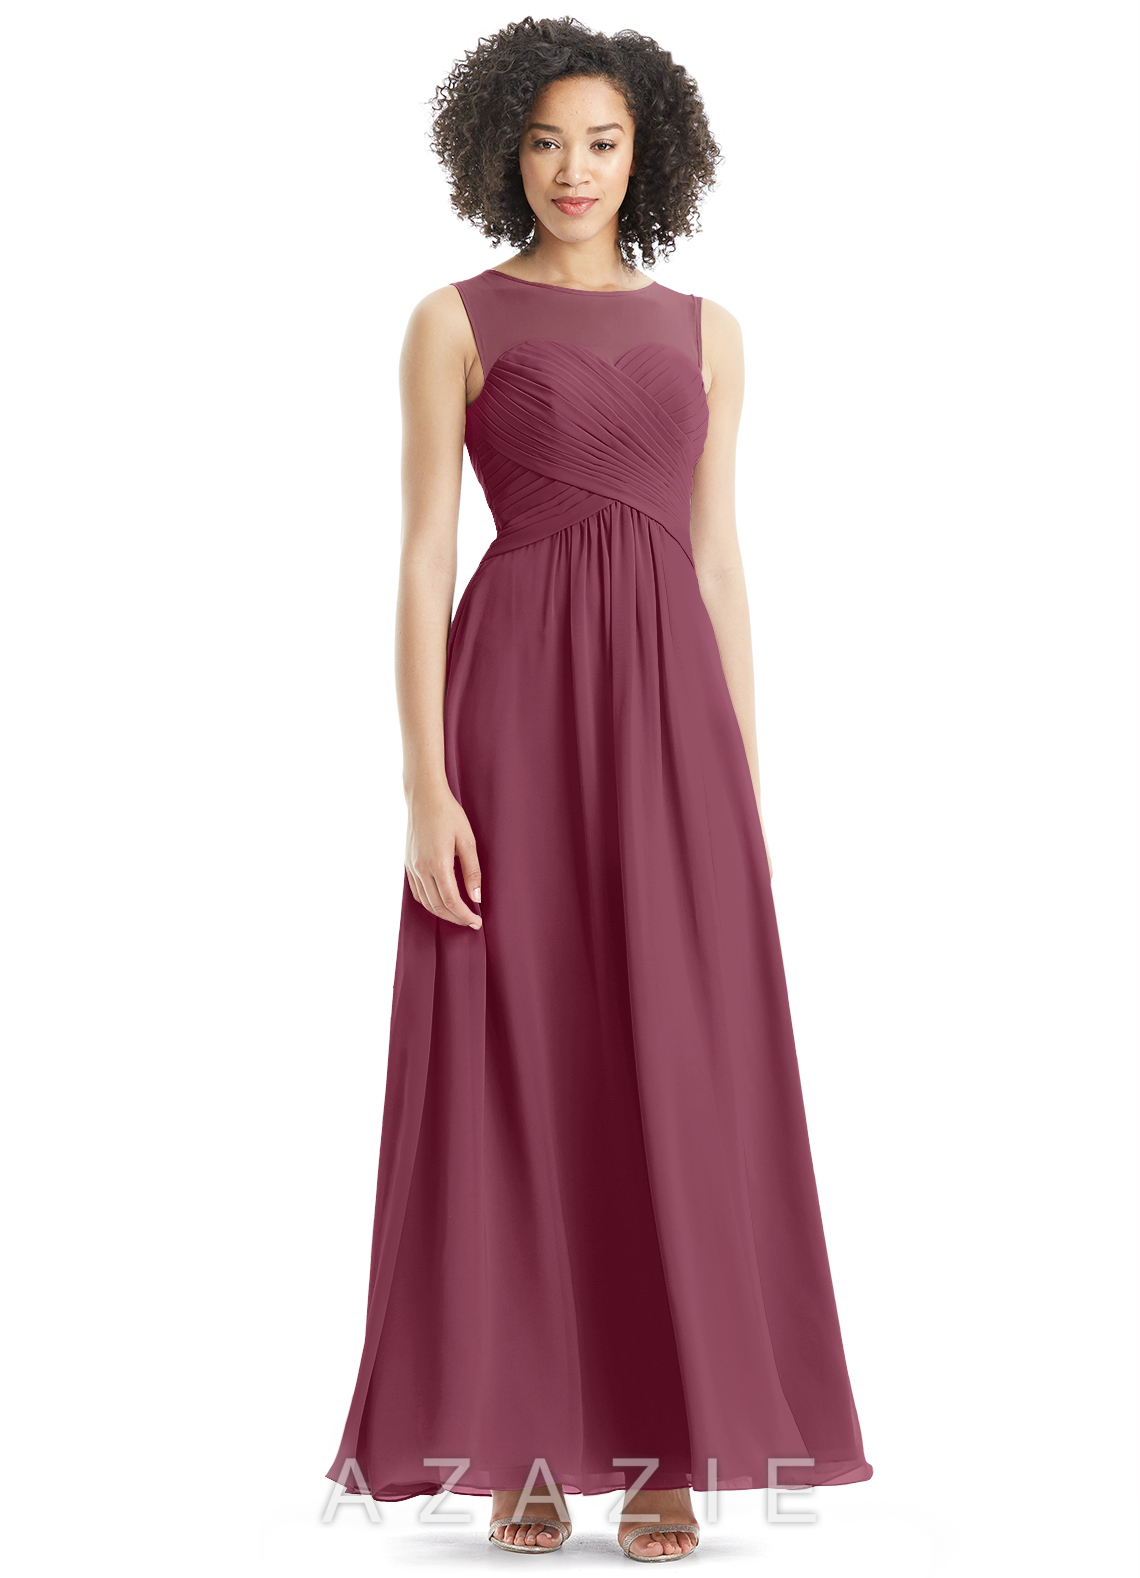 15754f109a6 Azazie Gigi Clearance Bridesmaid Dress